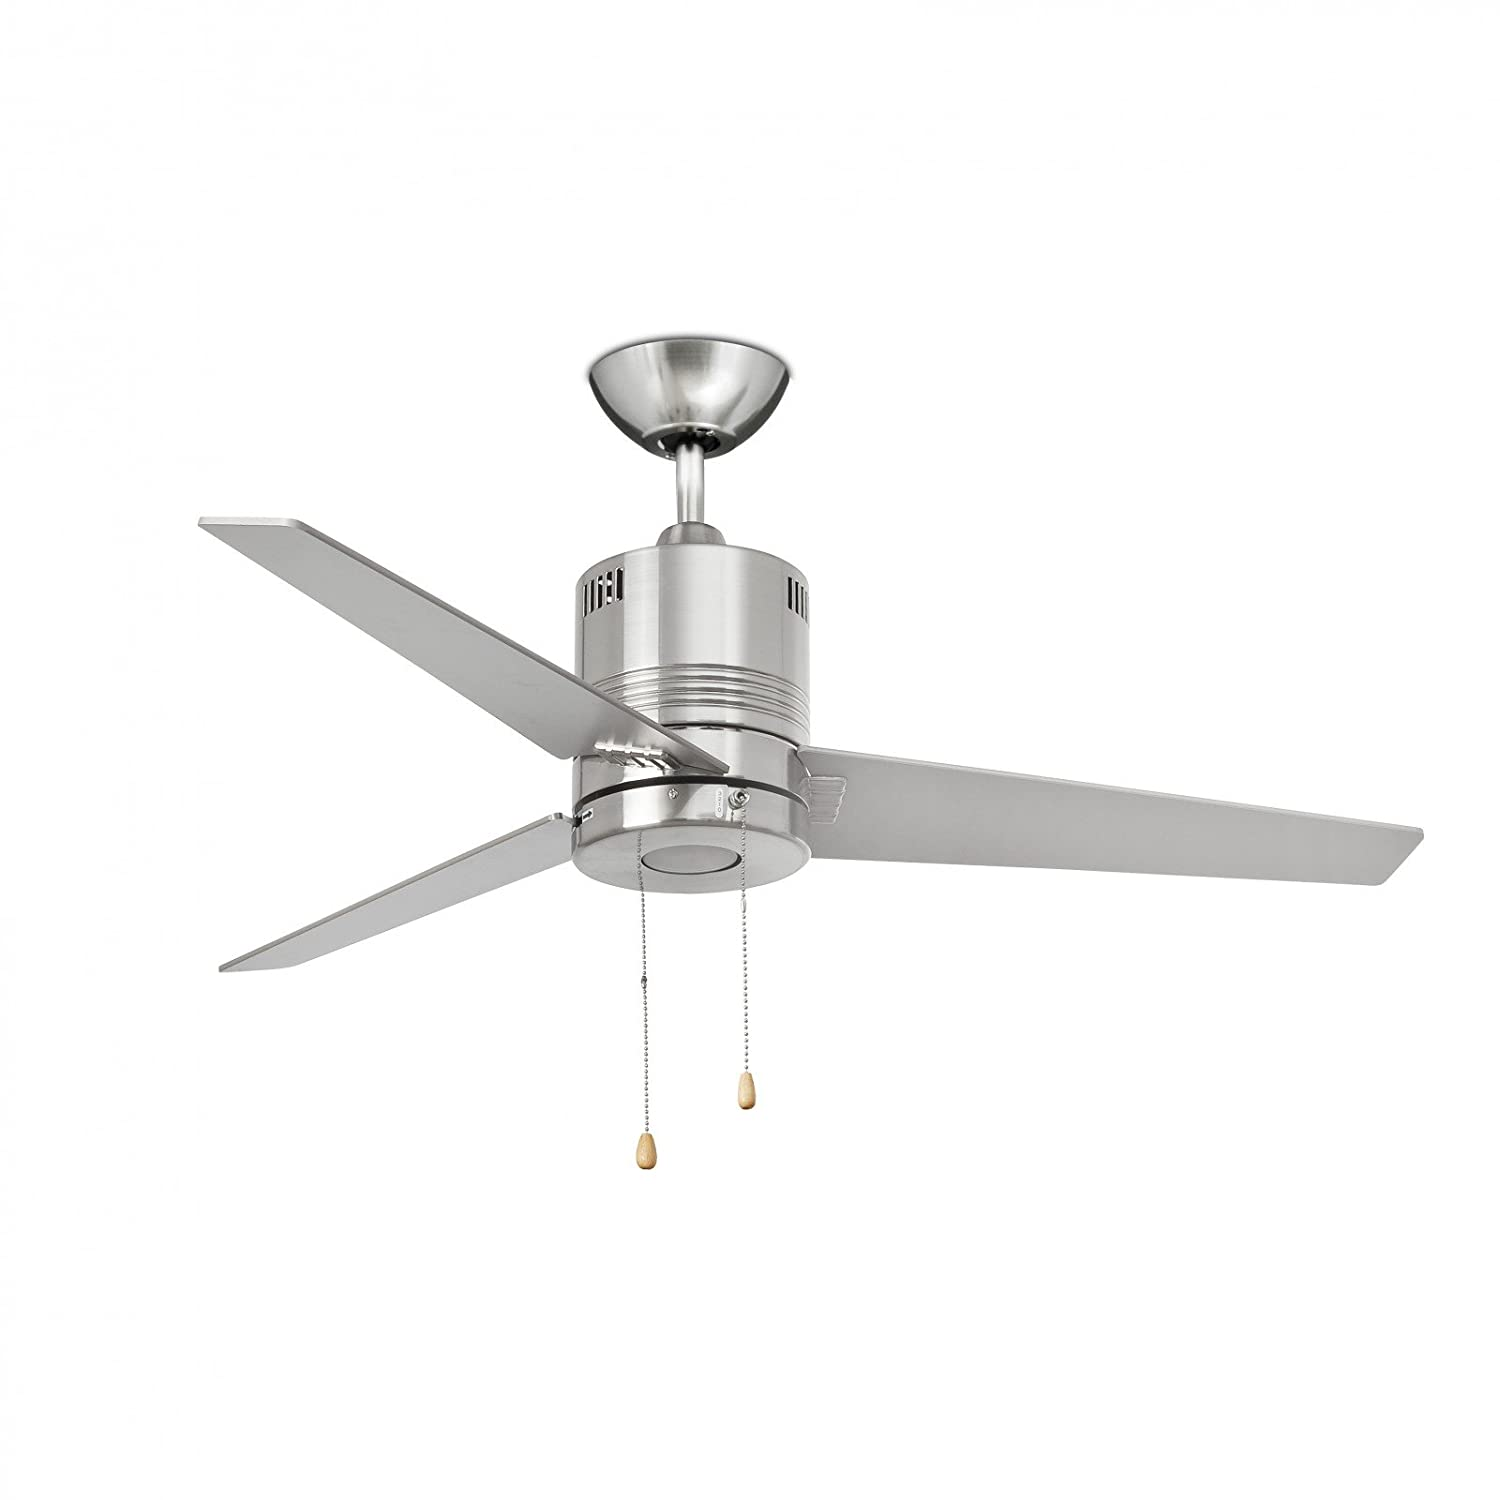 Faro LED Ventilator Chiloe, Metallisch, Glas/ Holz/ Metall, 33257